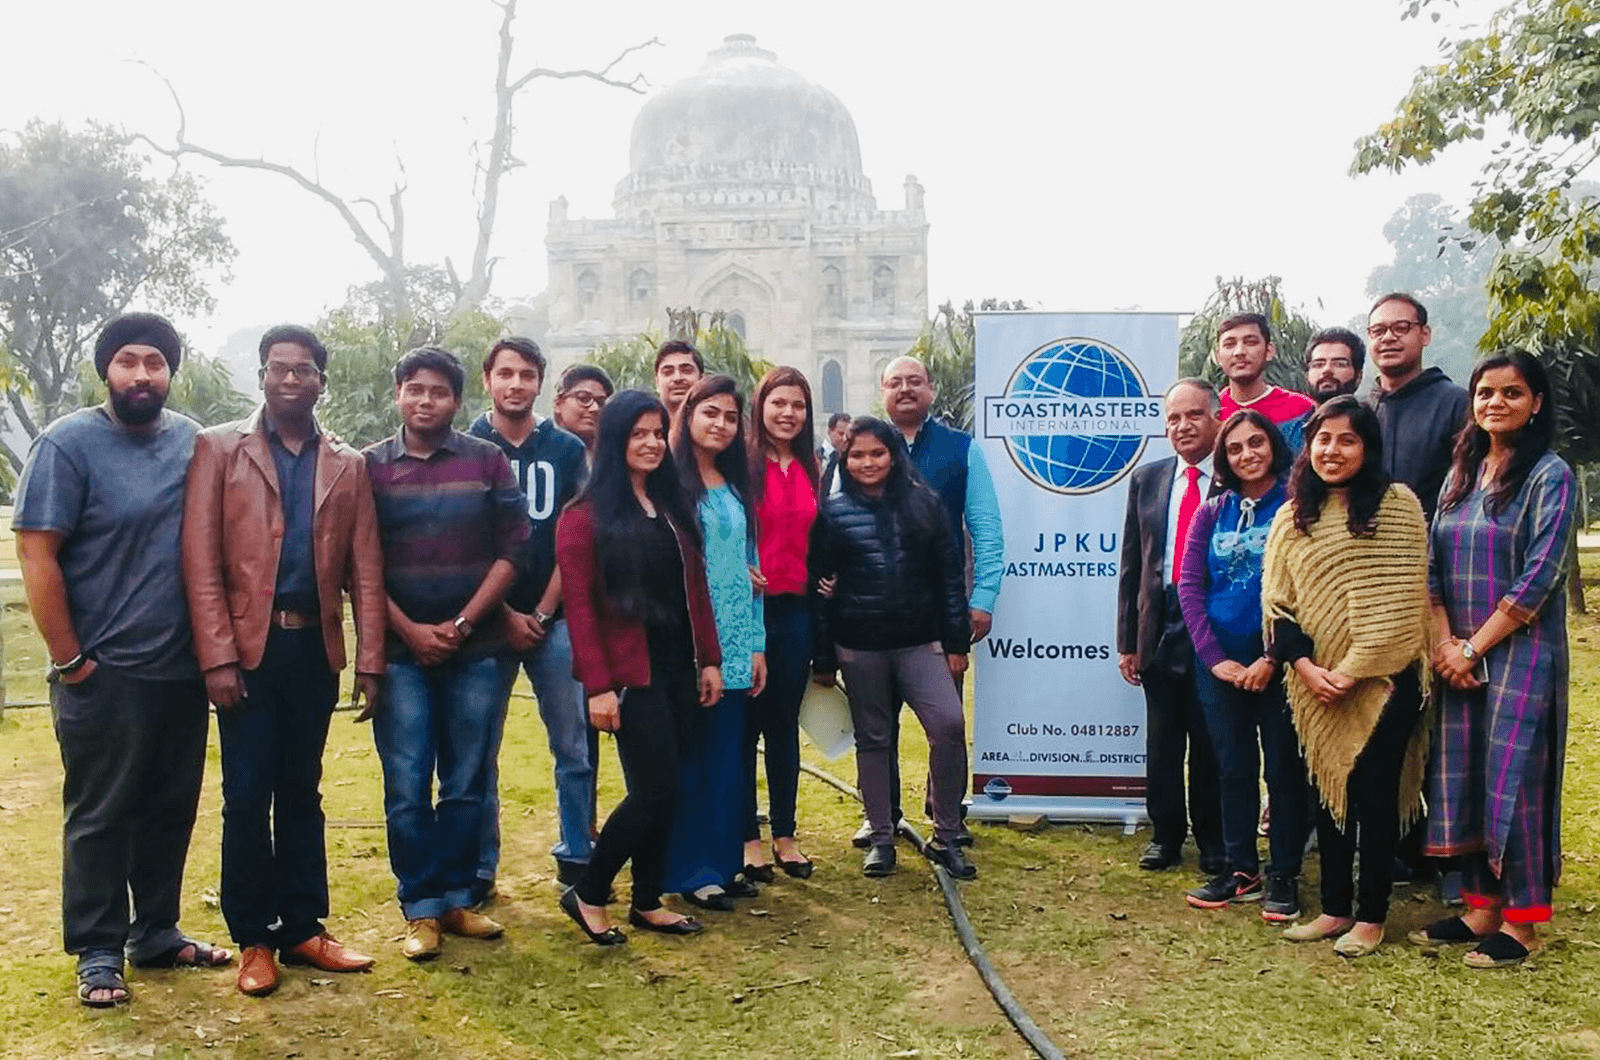 International President Deepak Menon poses with members of the JPKU Toastmasters club in New Delhi, India.